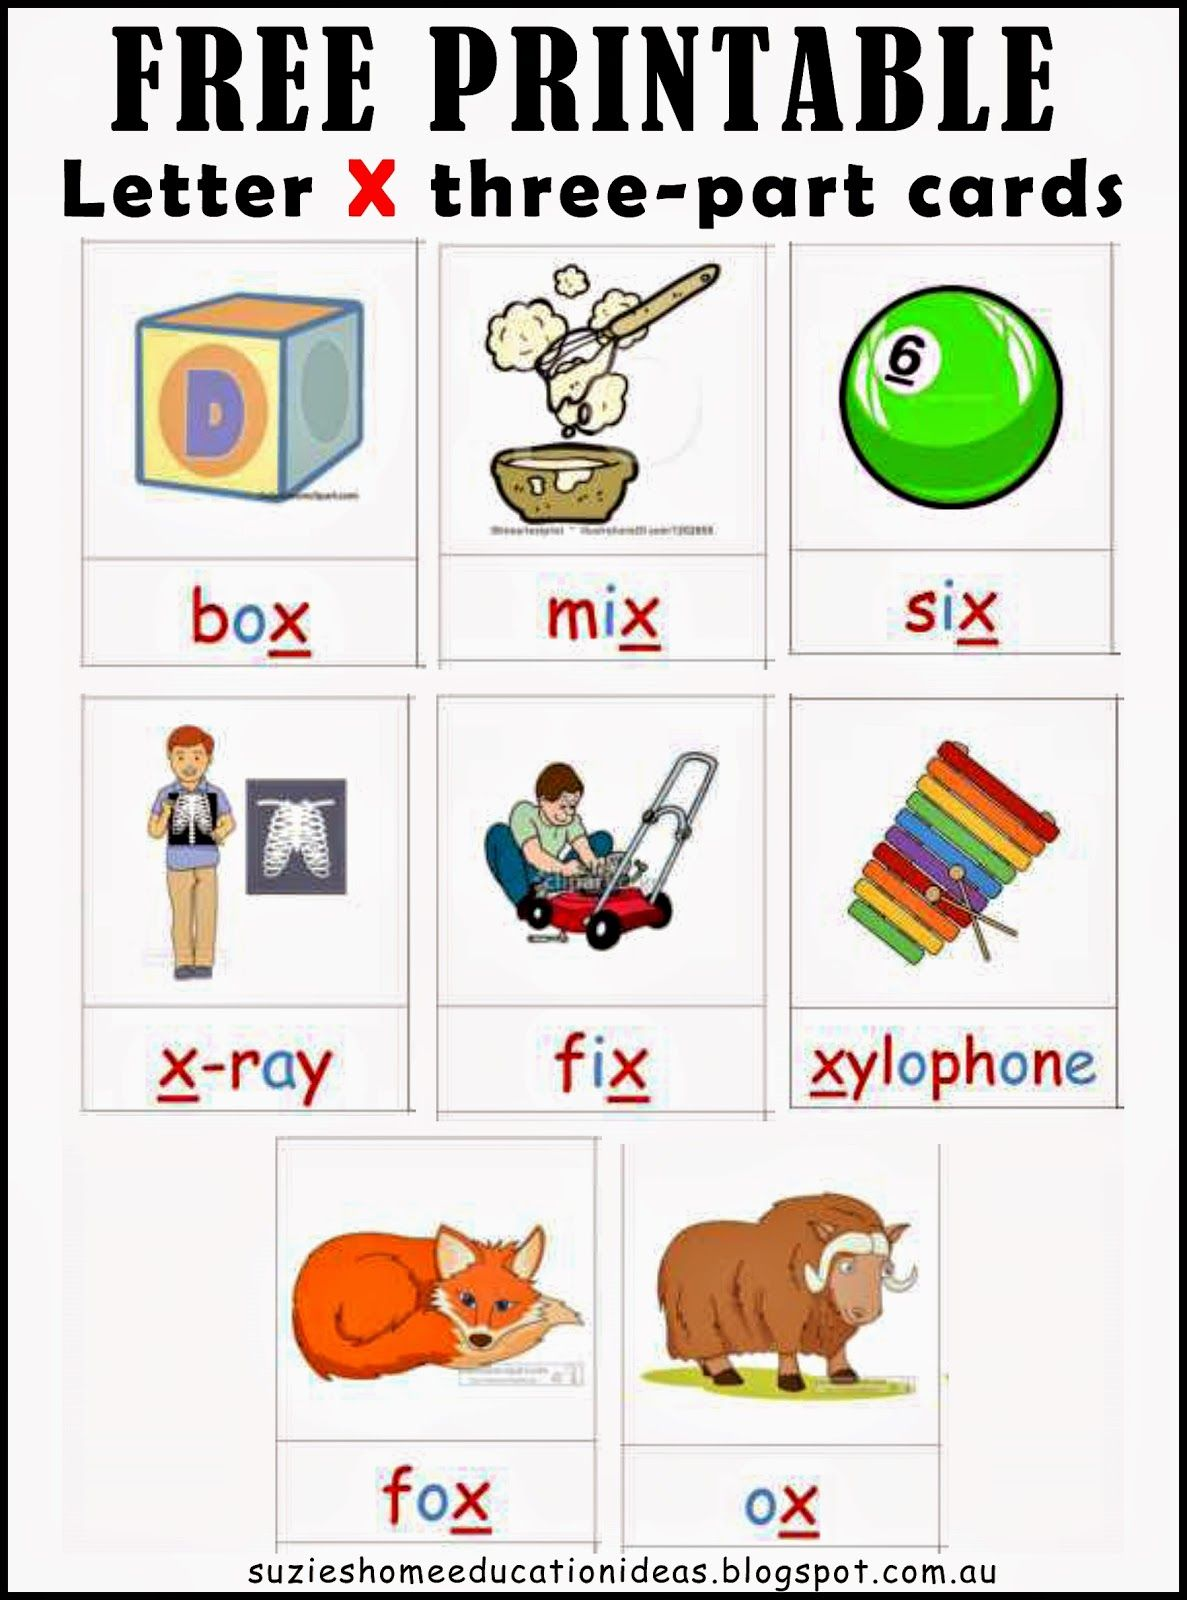 letter x printable cards and activity ideas classroom activities rh pinterest com